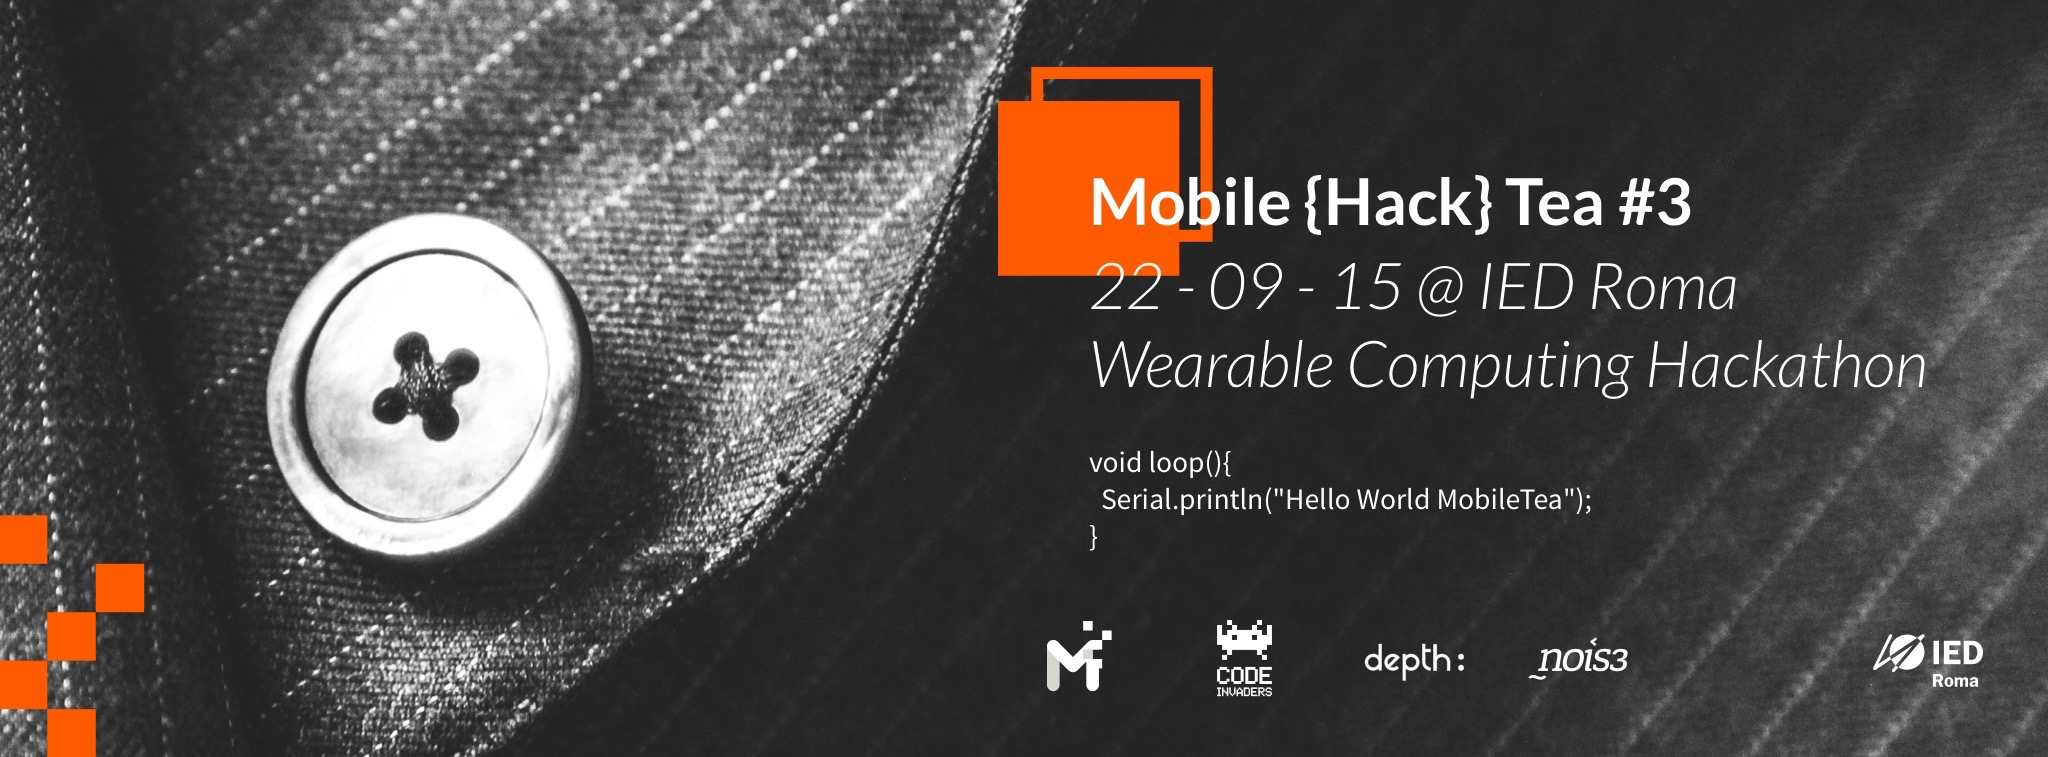 mobile hack tea hackathon code invaders ied roma interaction design wearable computing nois3 depth: